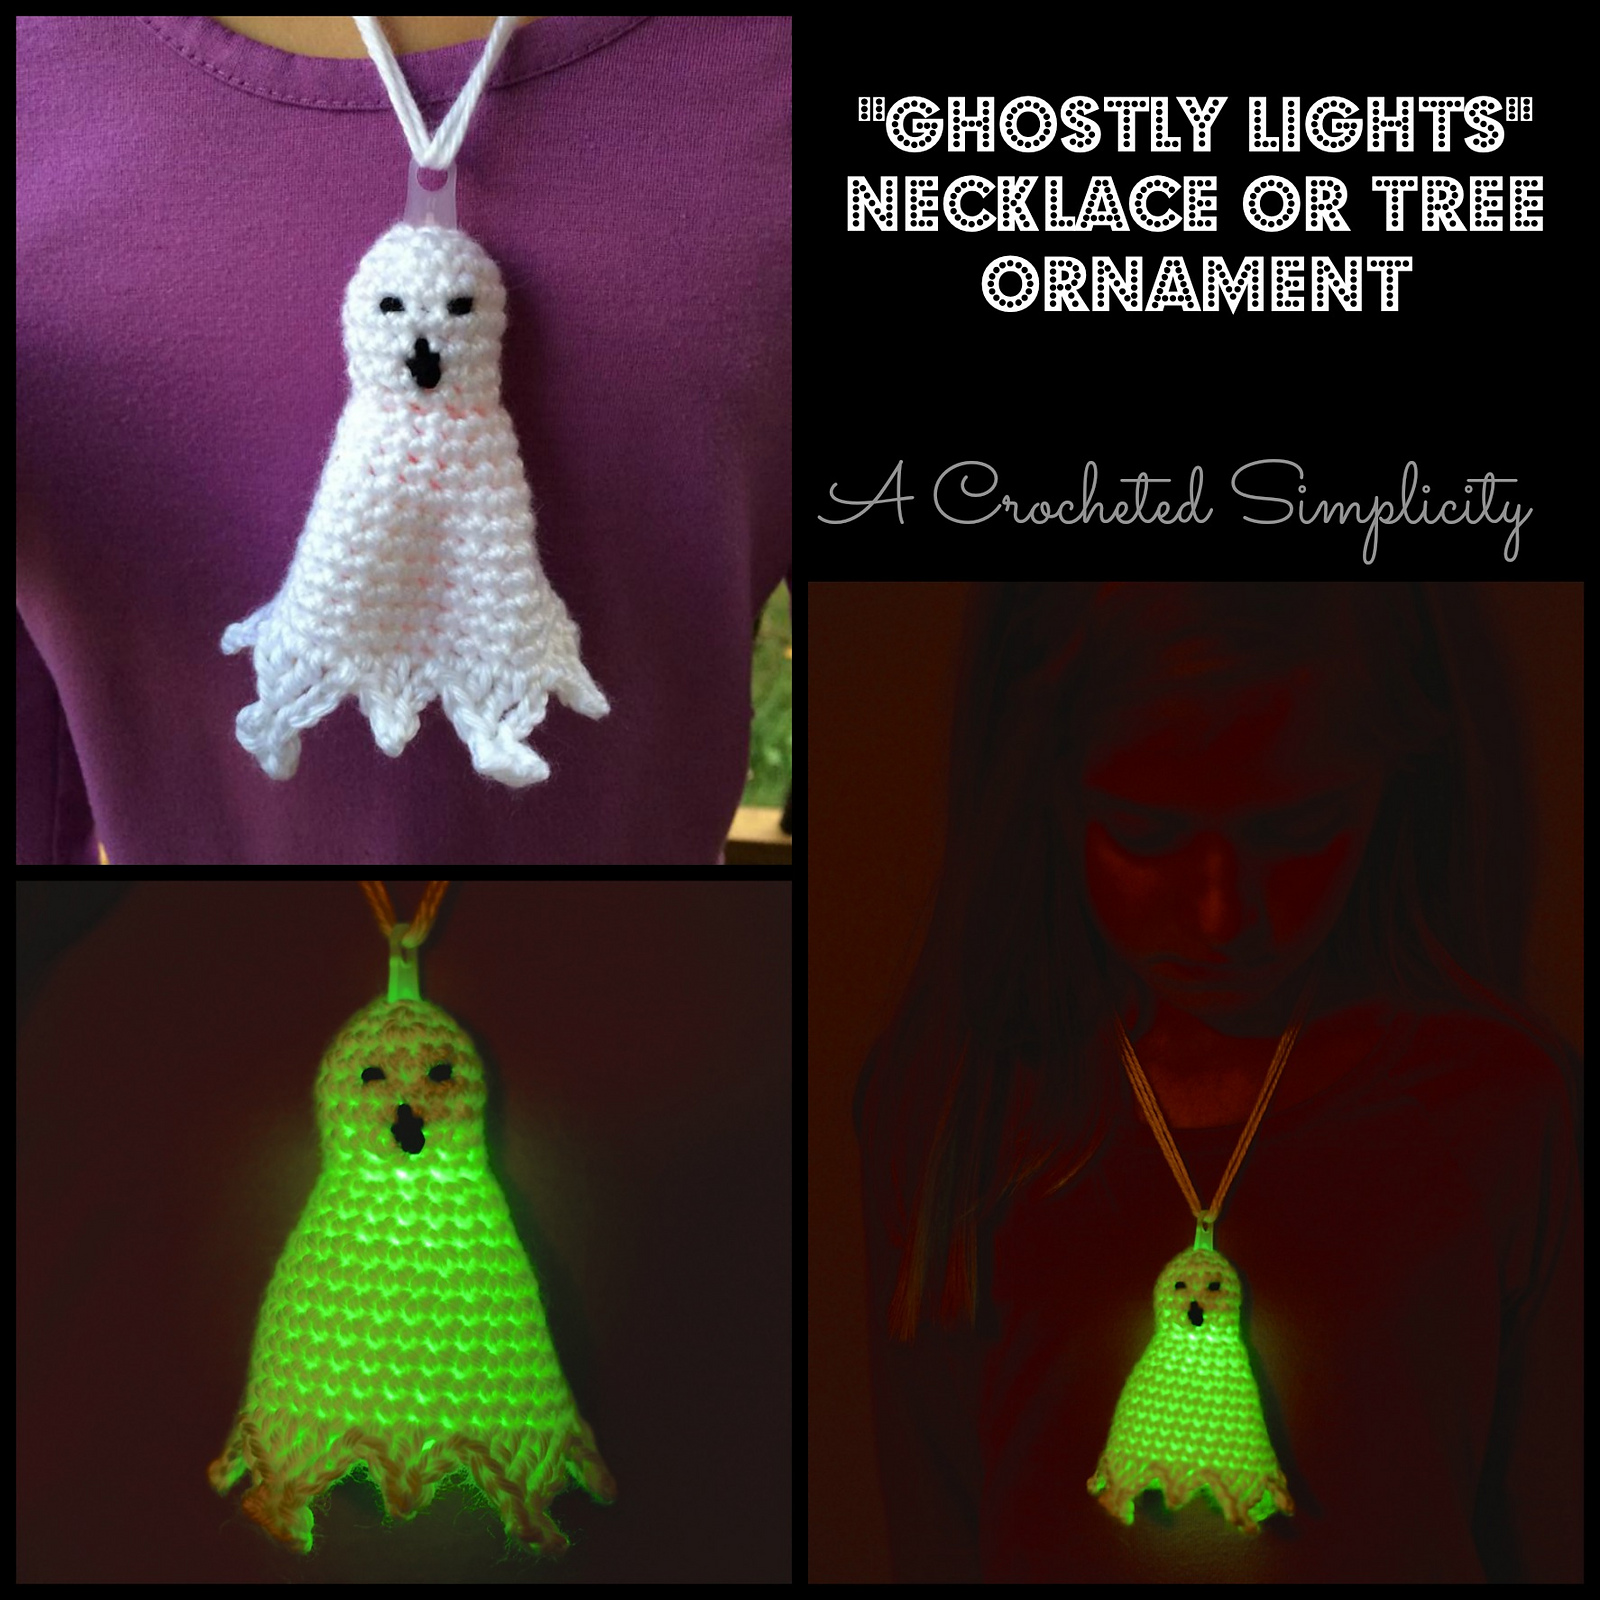 Ghostly Lights Tree Ornament Free Crochet Pattern